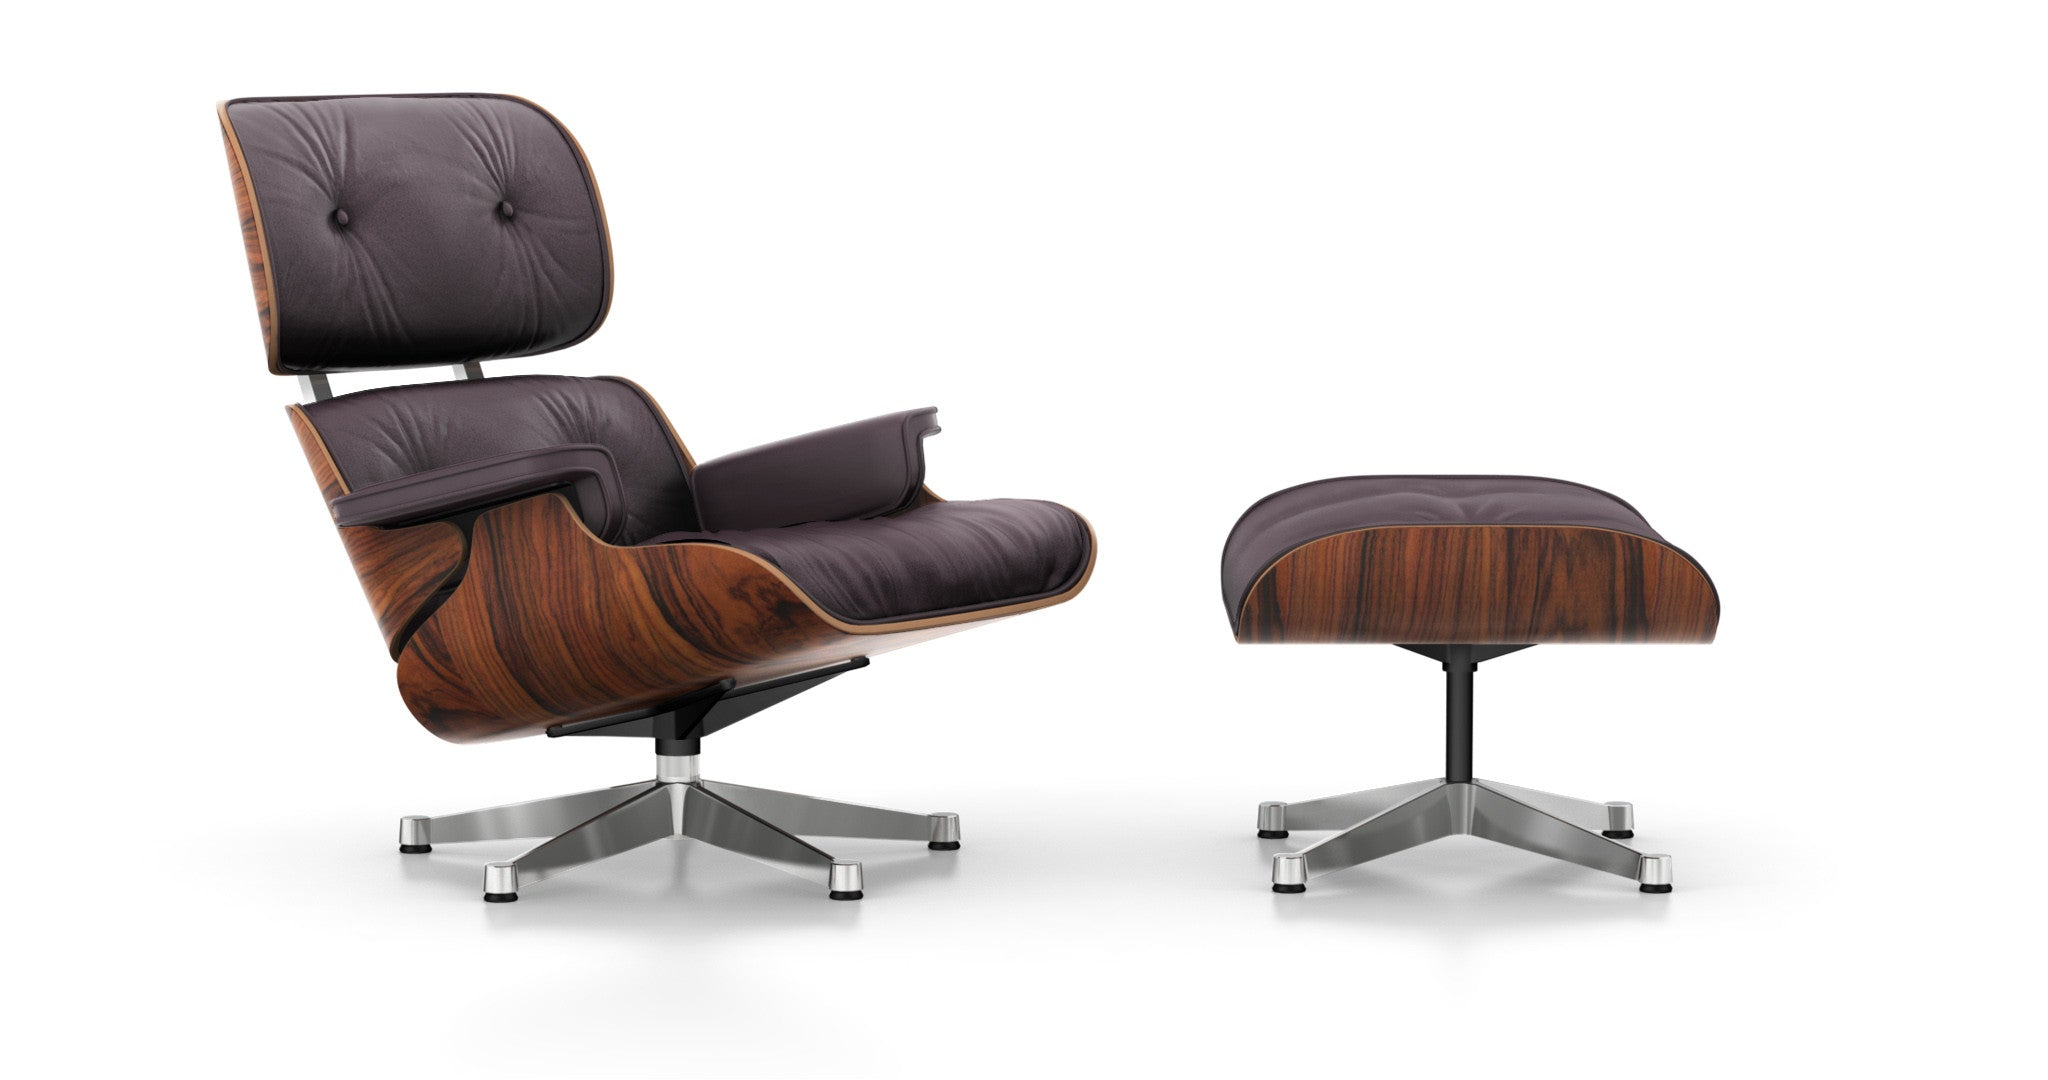 Eames Lounge Chair And Ottoman Santos Palisander, Plum Leather